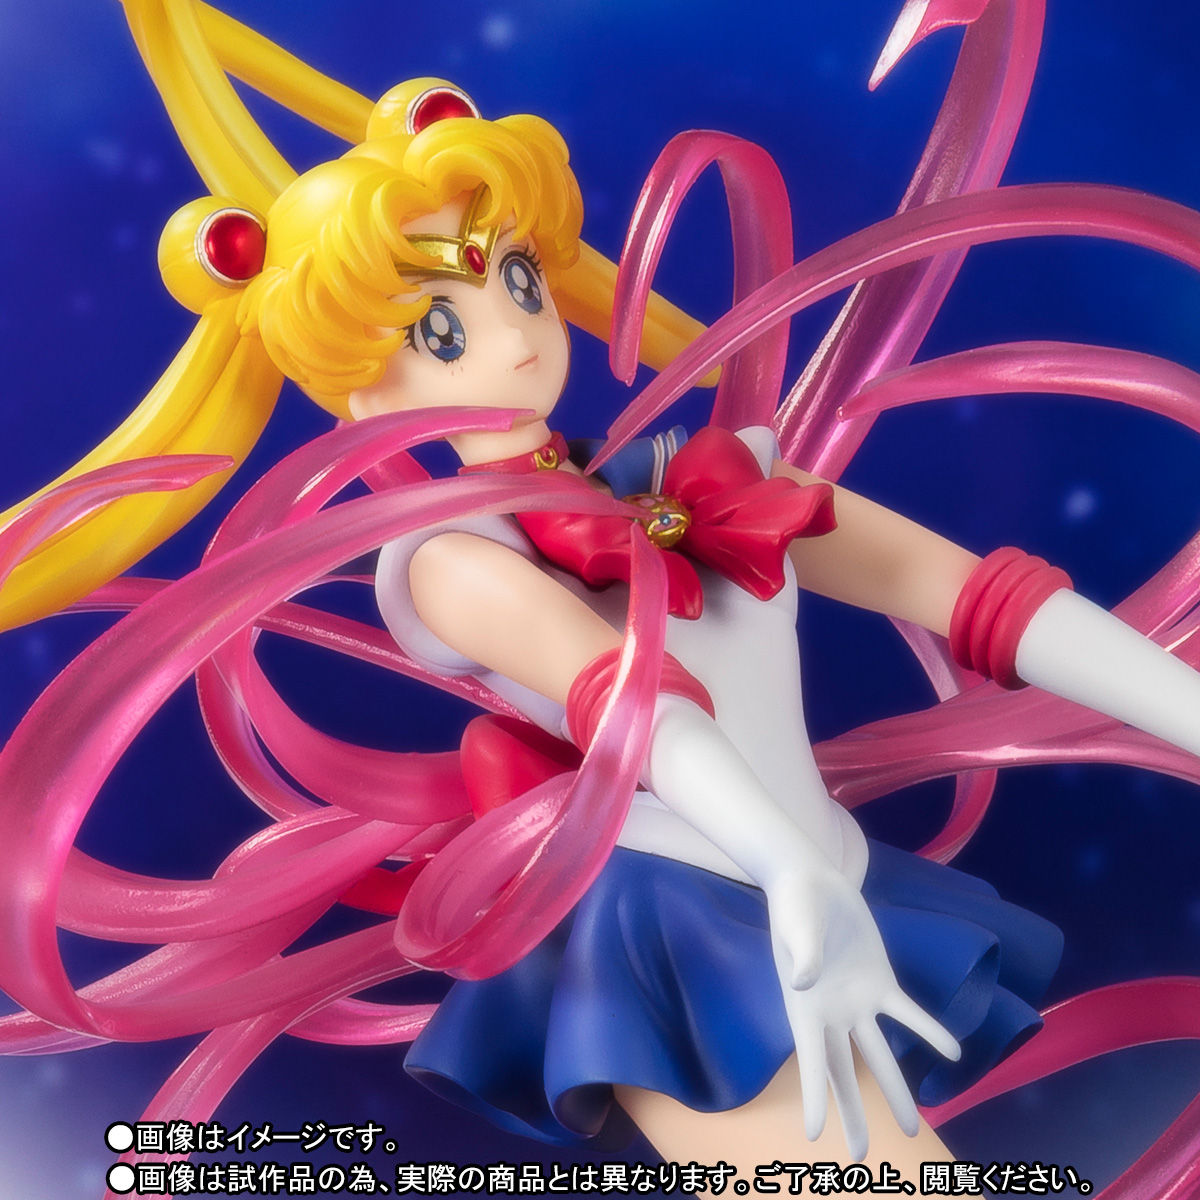 Figuarts Zero chouette『セーラームーン -Moon Crystal Power, Make Up-』完成品フィギュア-001